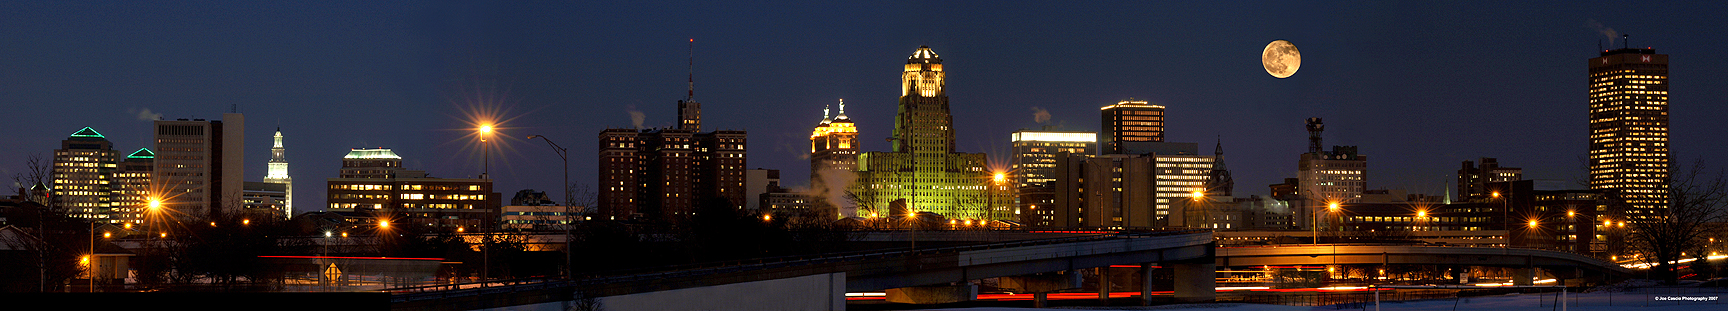 Moonrise_over_Buffalo_01.jpg